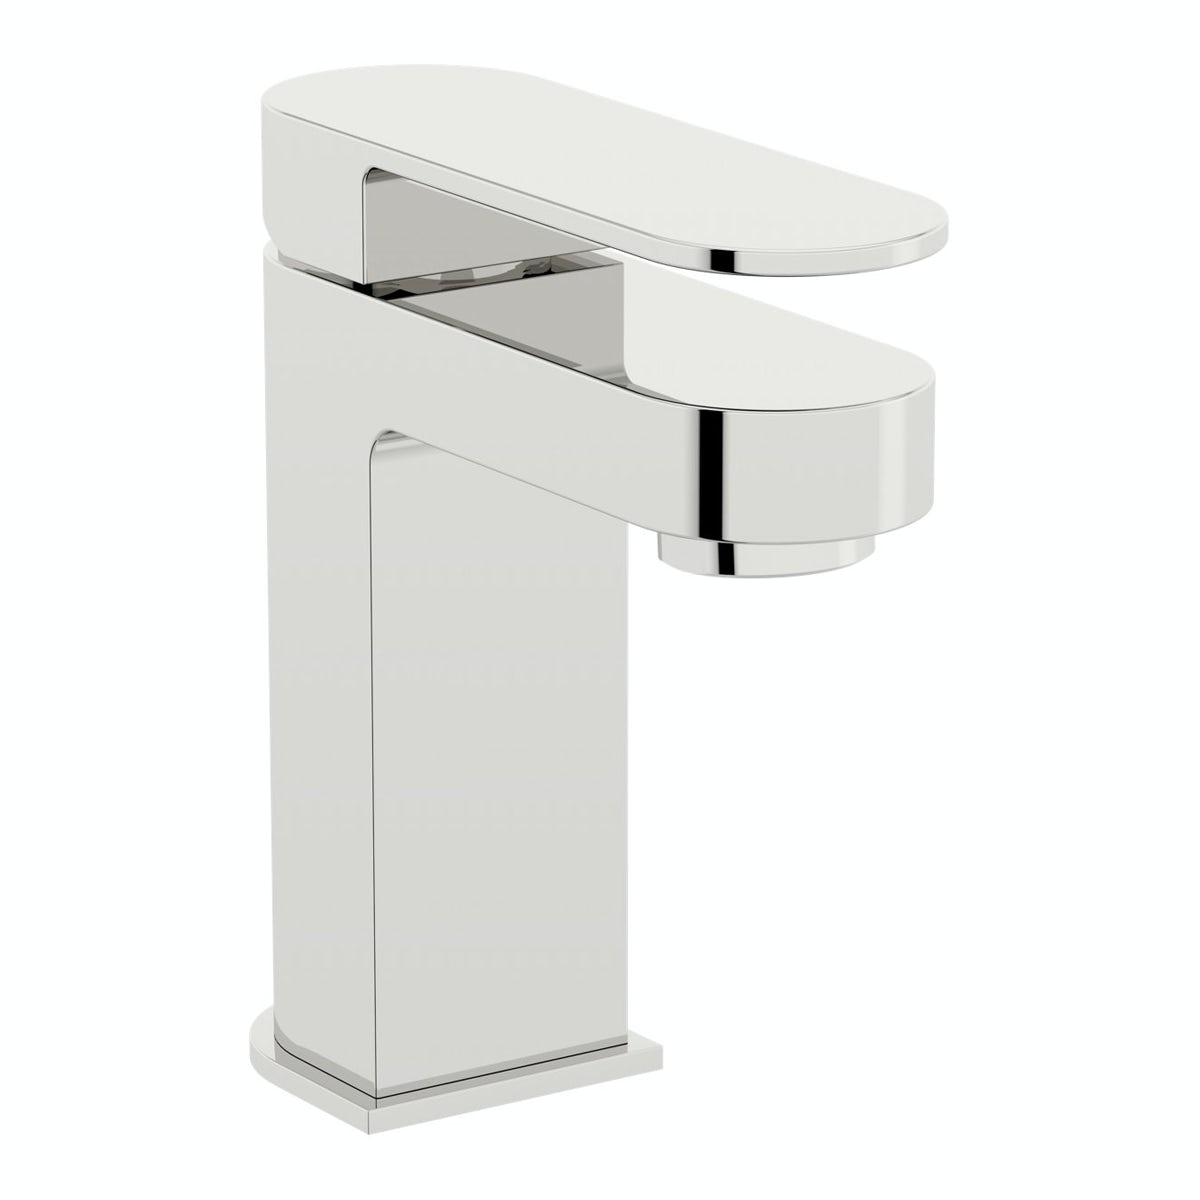 Mode Hardy cloakroom basin mixer tap offer pack